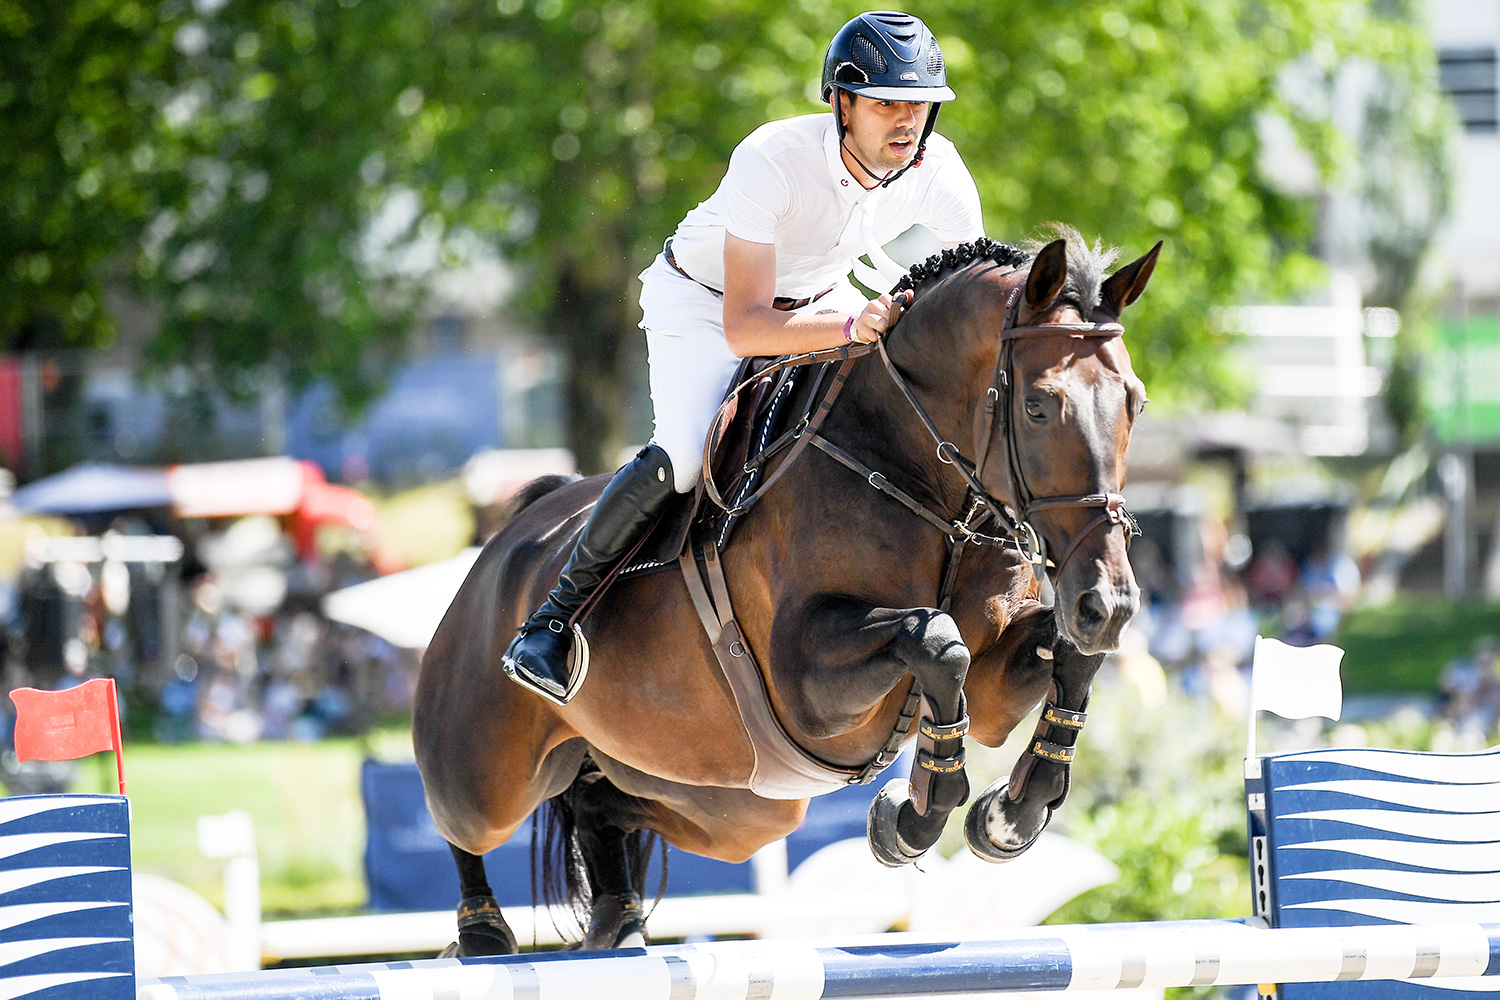 26 July 2019, Berlin: Equestrian sports/jumping: Global Champions Tour: Nayel Nassar on the horse Lucifer V jumps over an obstacle during the opening jump.